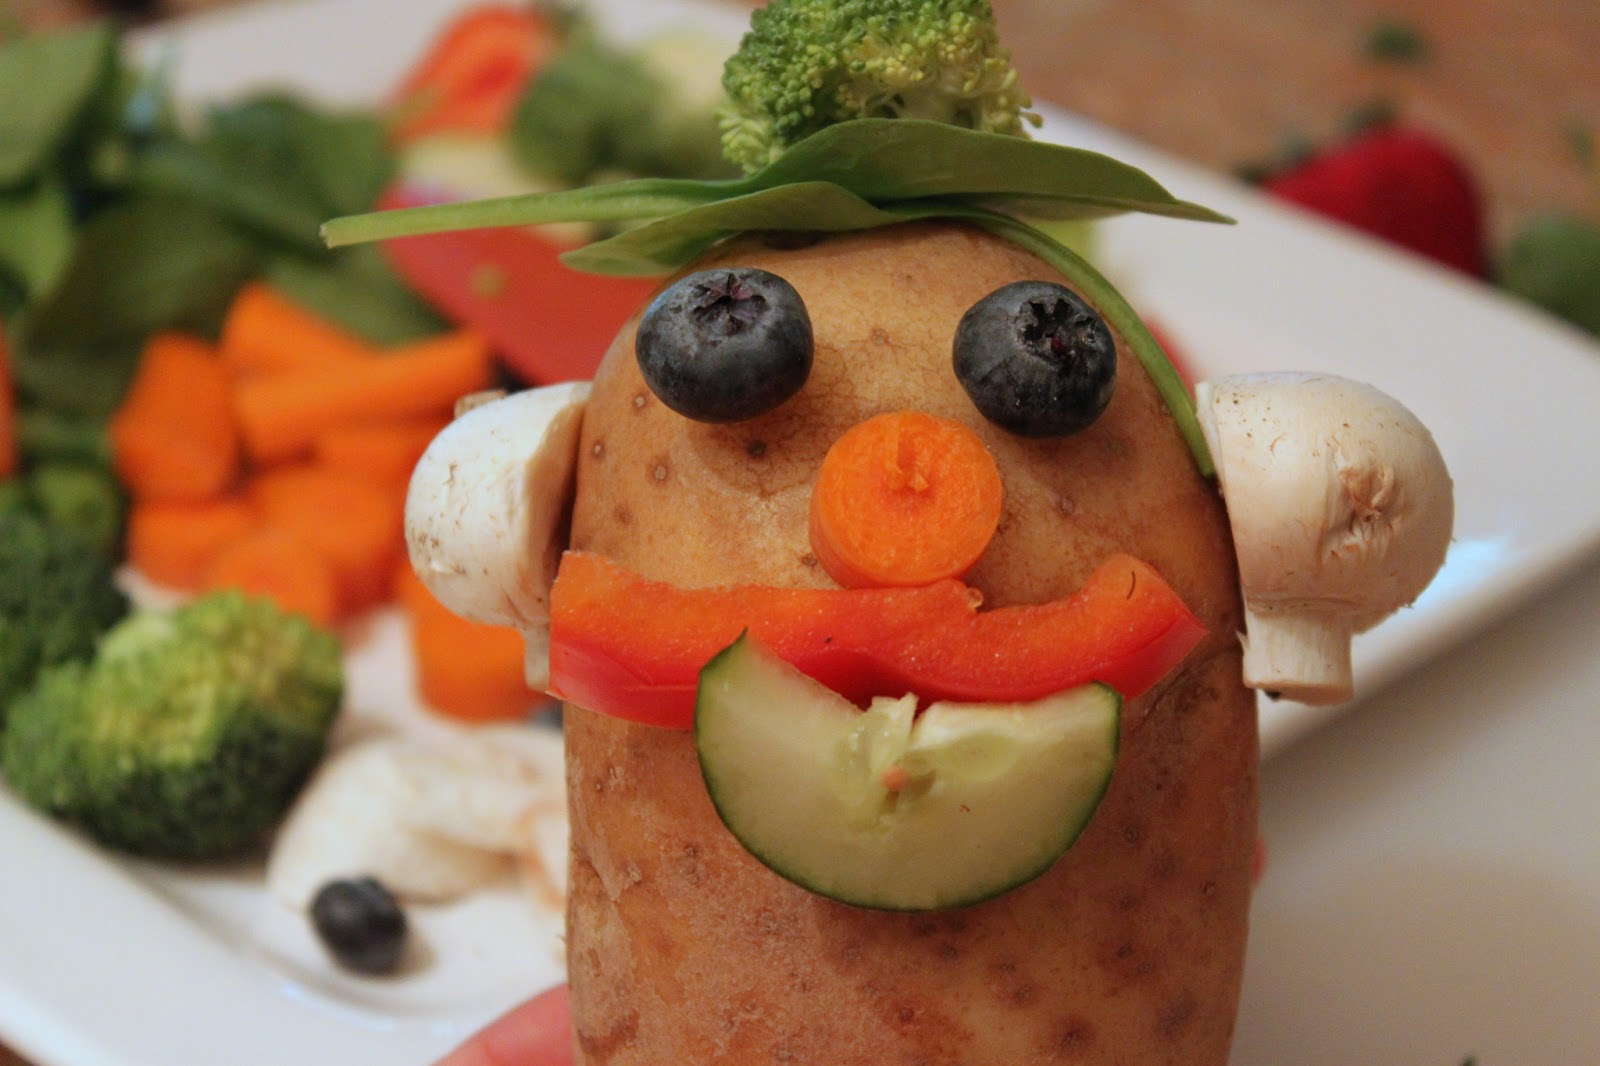 image Fun with veg get your 5 a day